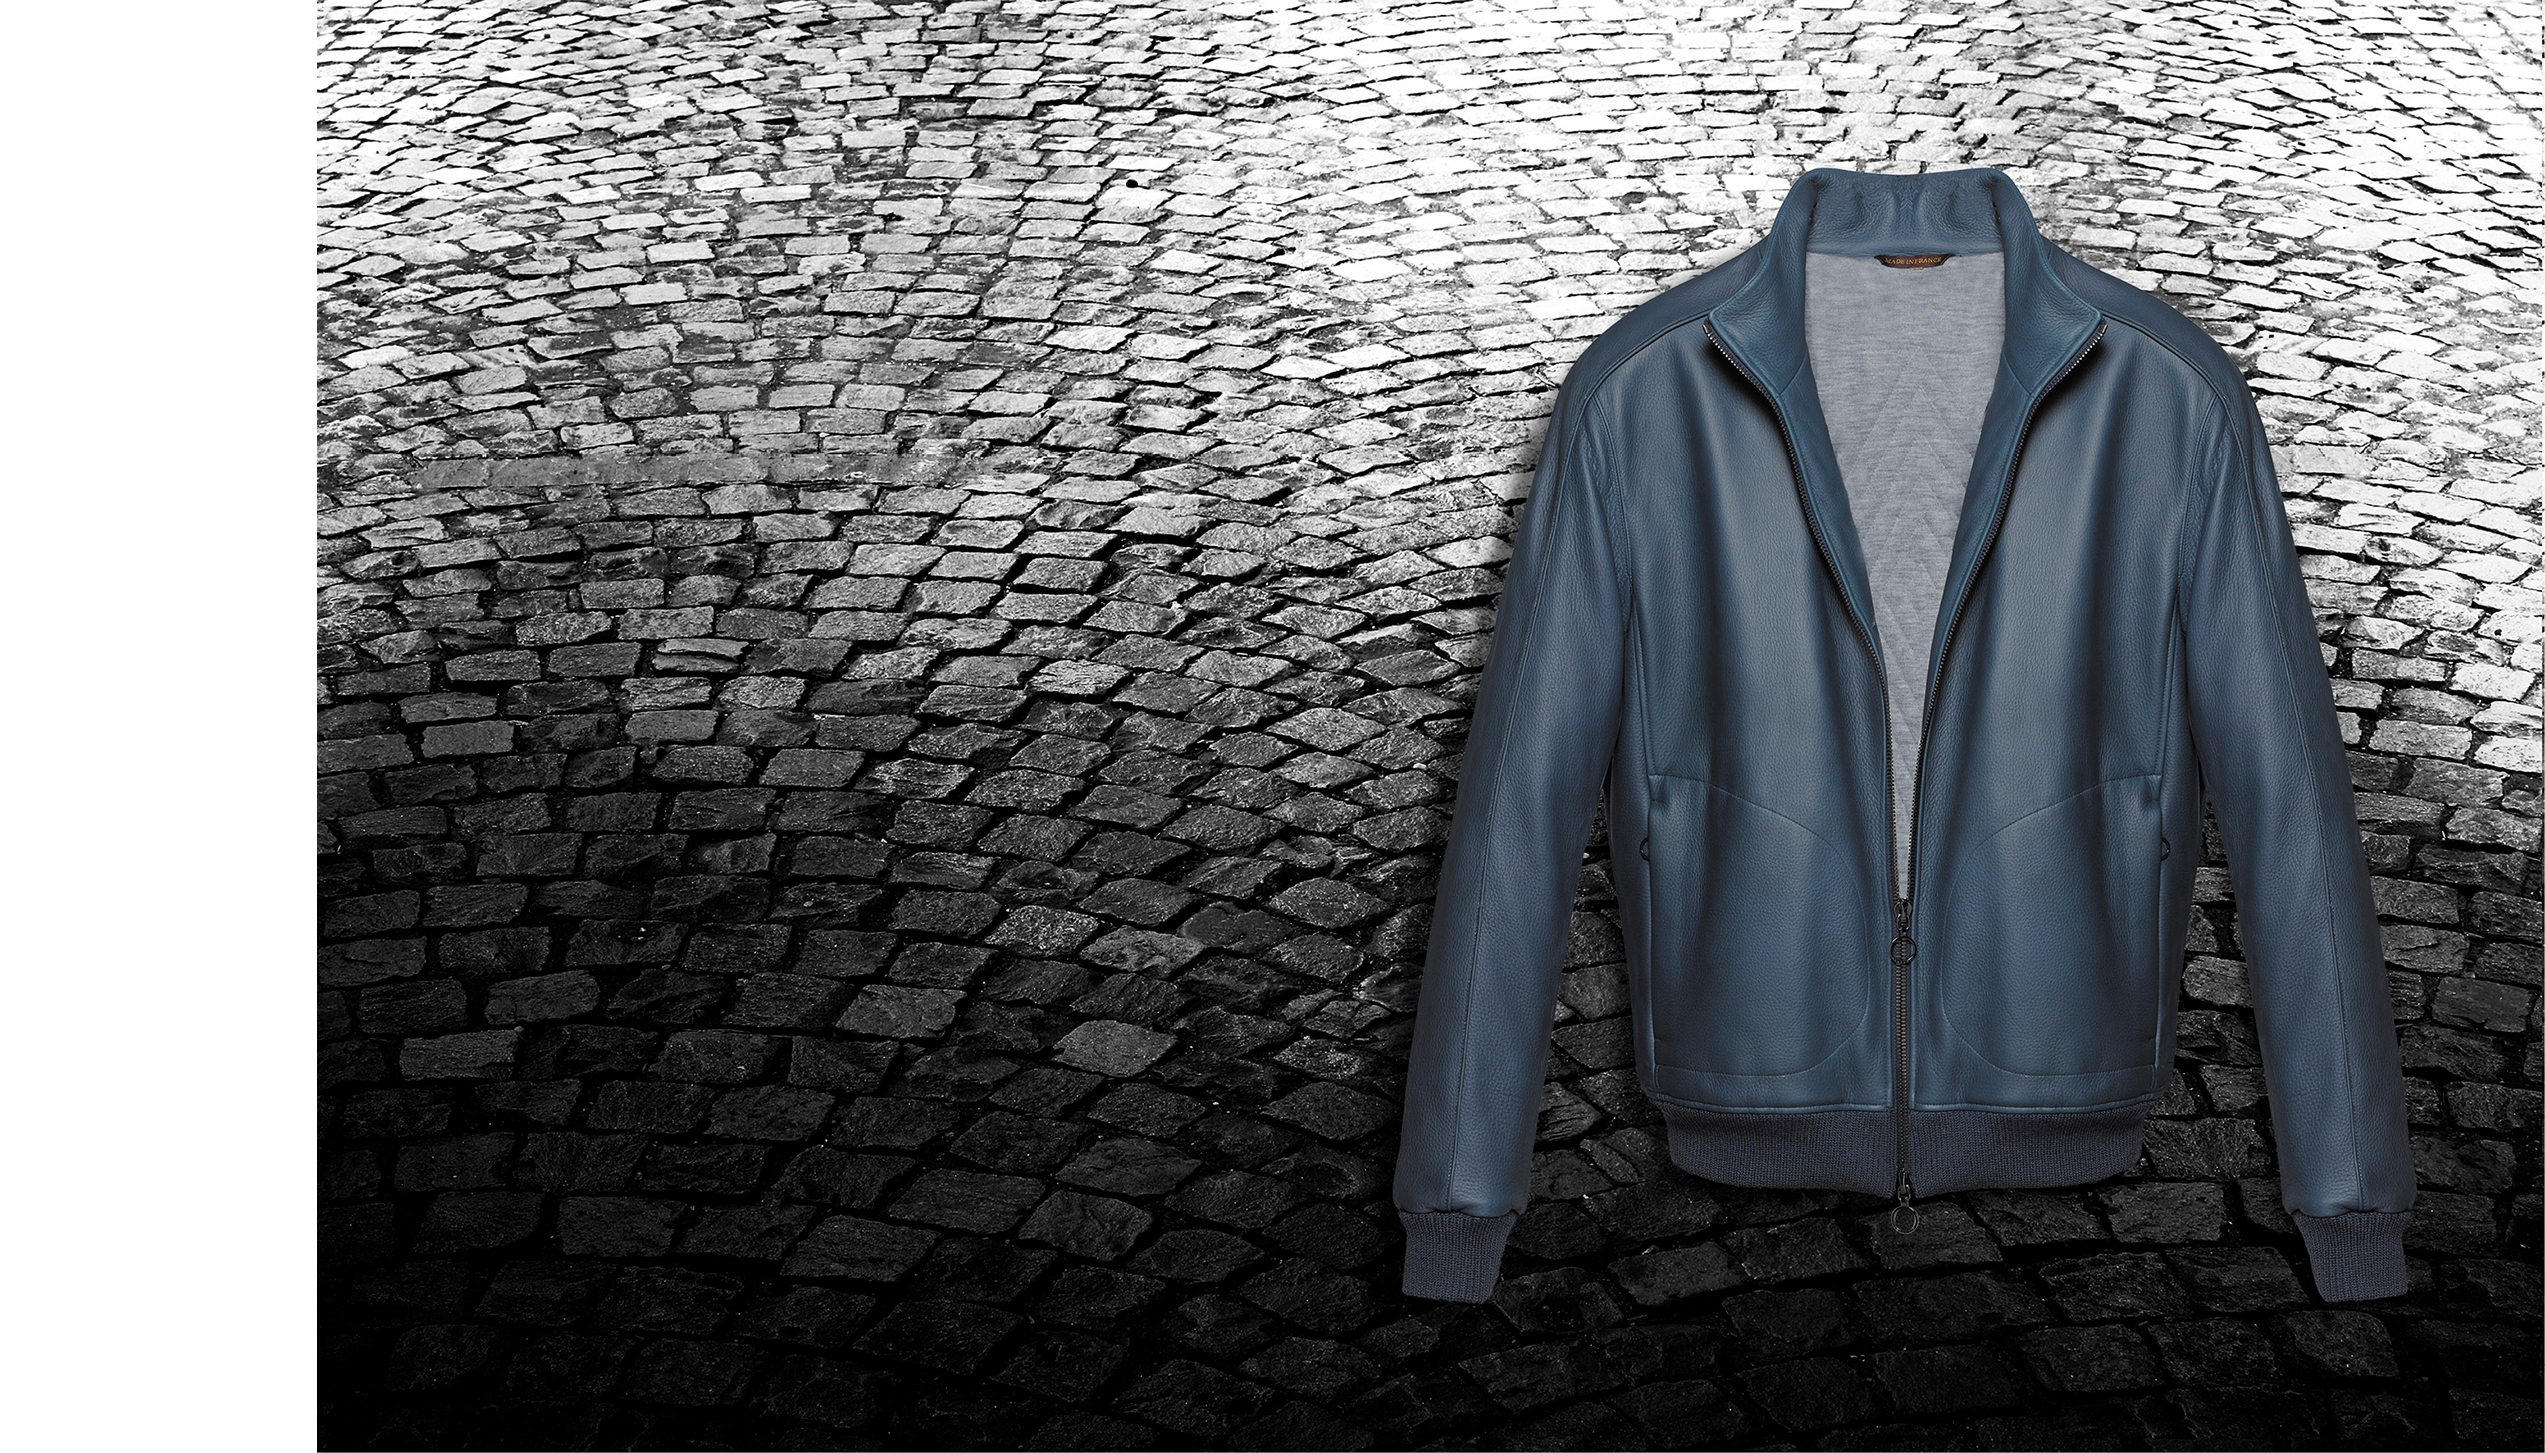 Daytona jacket – 667 deer leather, lined with padded jersey cashmere